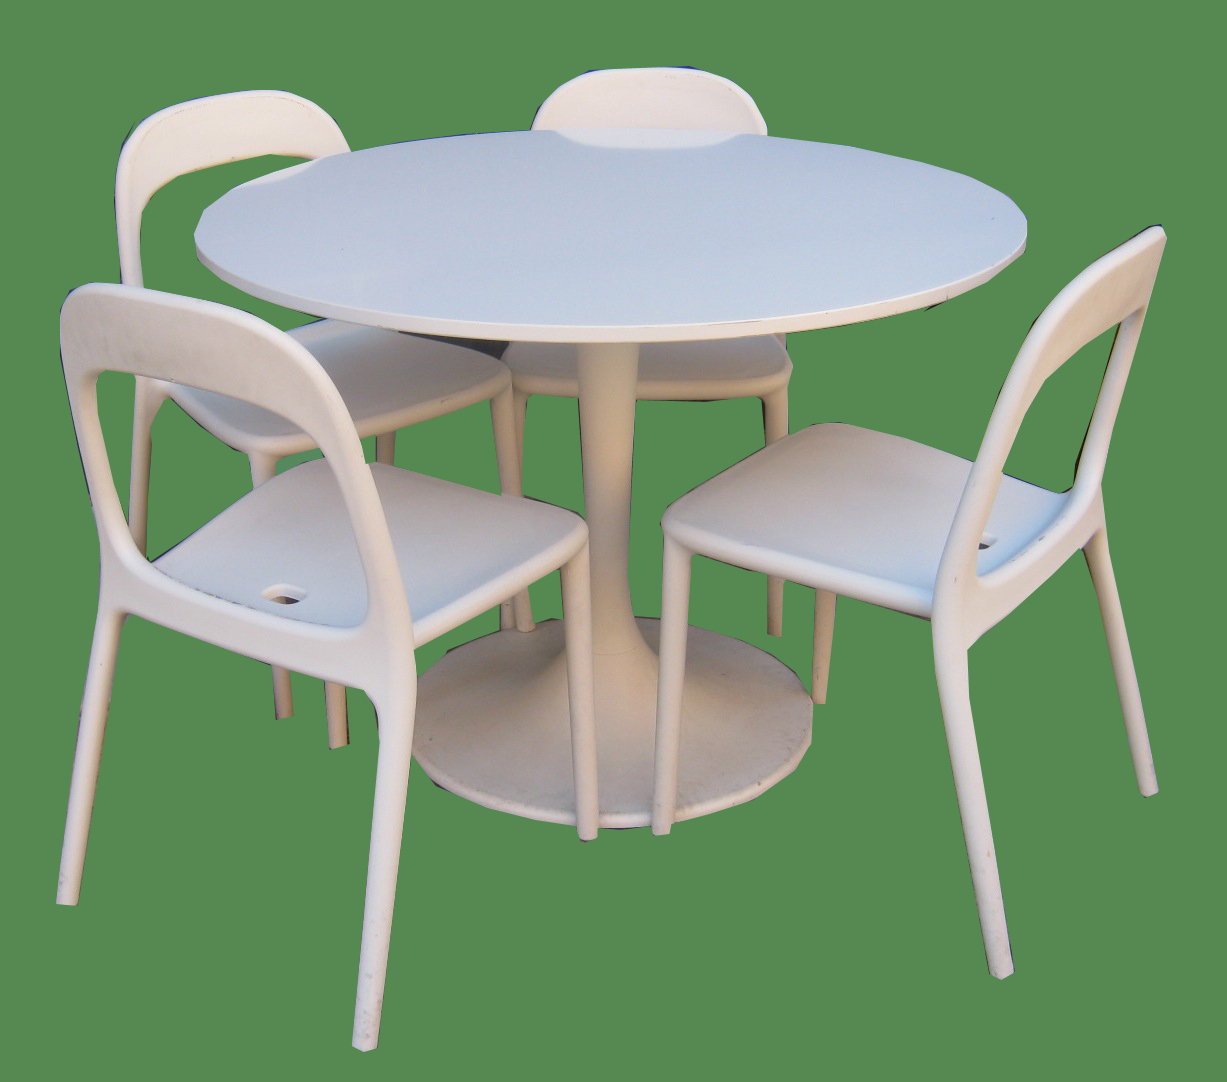 Groovy Uhuru Furniture Collectibles Mid Century Modern Style Alphanode Cool Chair Designs And Ideas Alphanodeonline